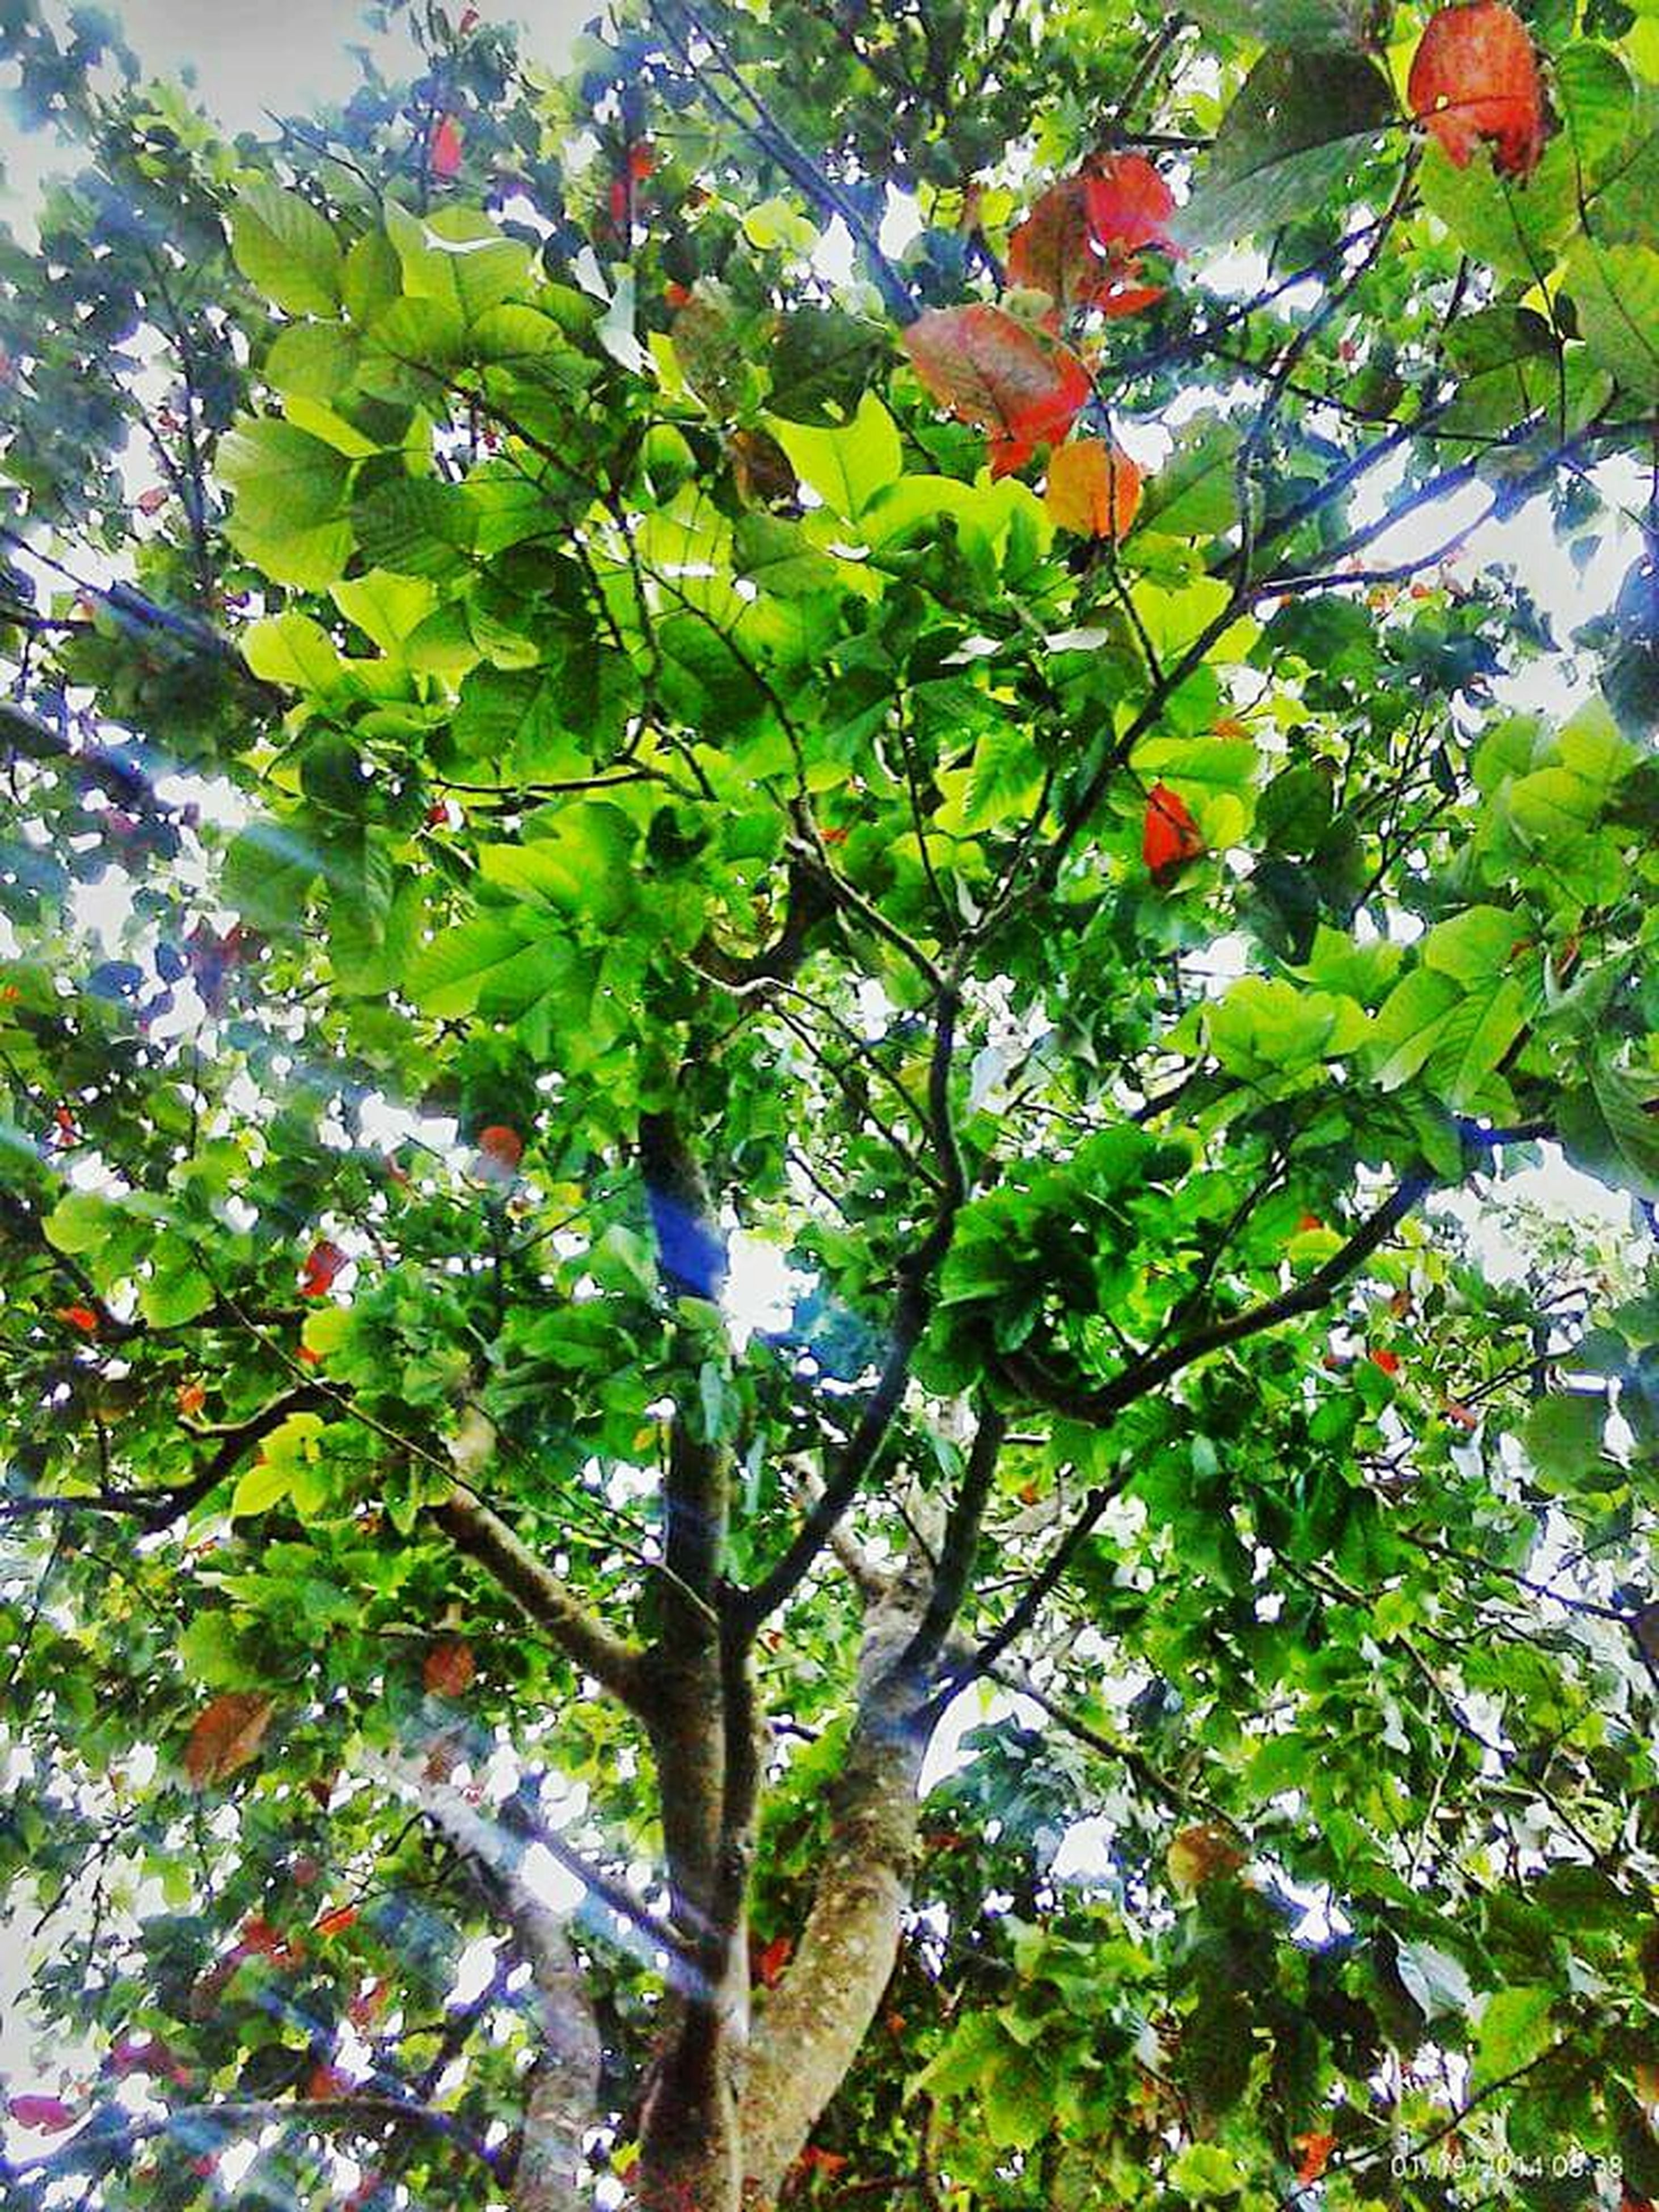 tree, branch, low angle view, growth, leaf, nature, beauty in nature, green color, freshness, tranquility, day, outdoors, fruit, sunlight, no people, sky, lush foliage, green, growing, hanging